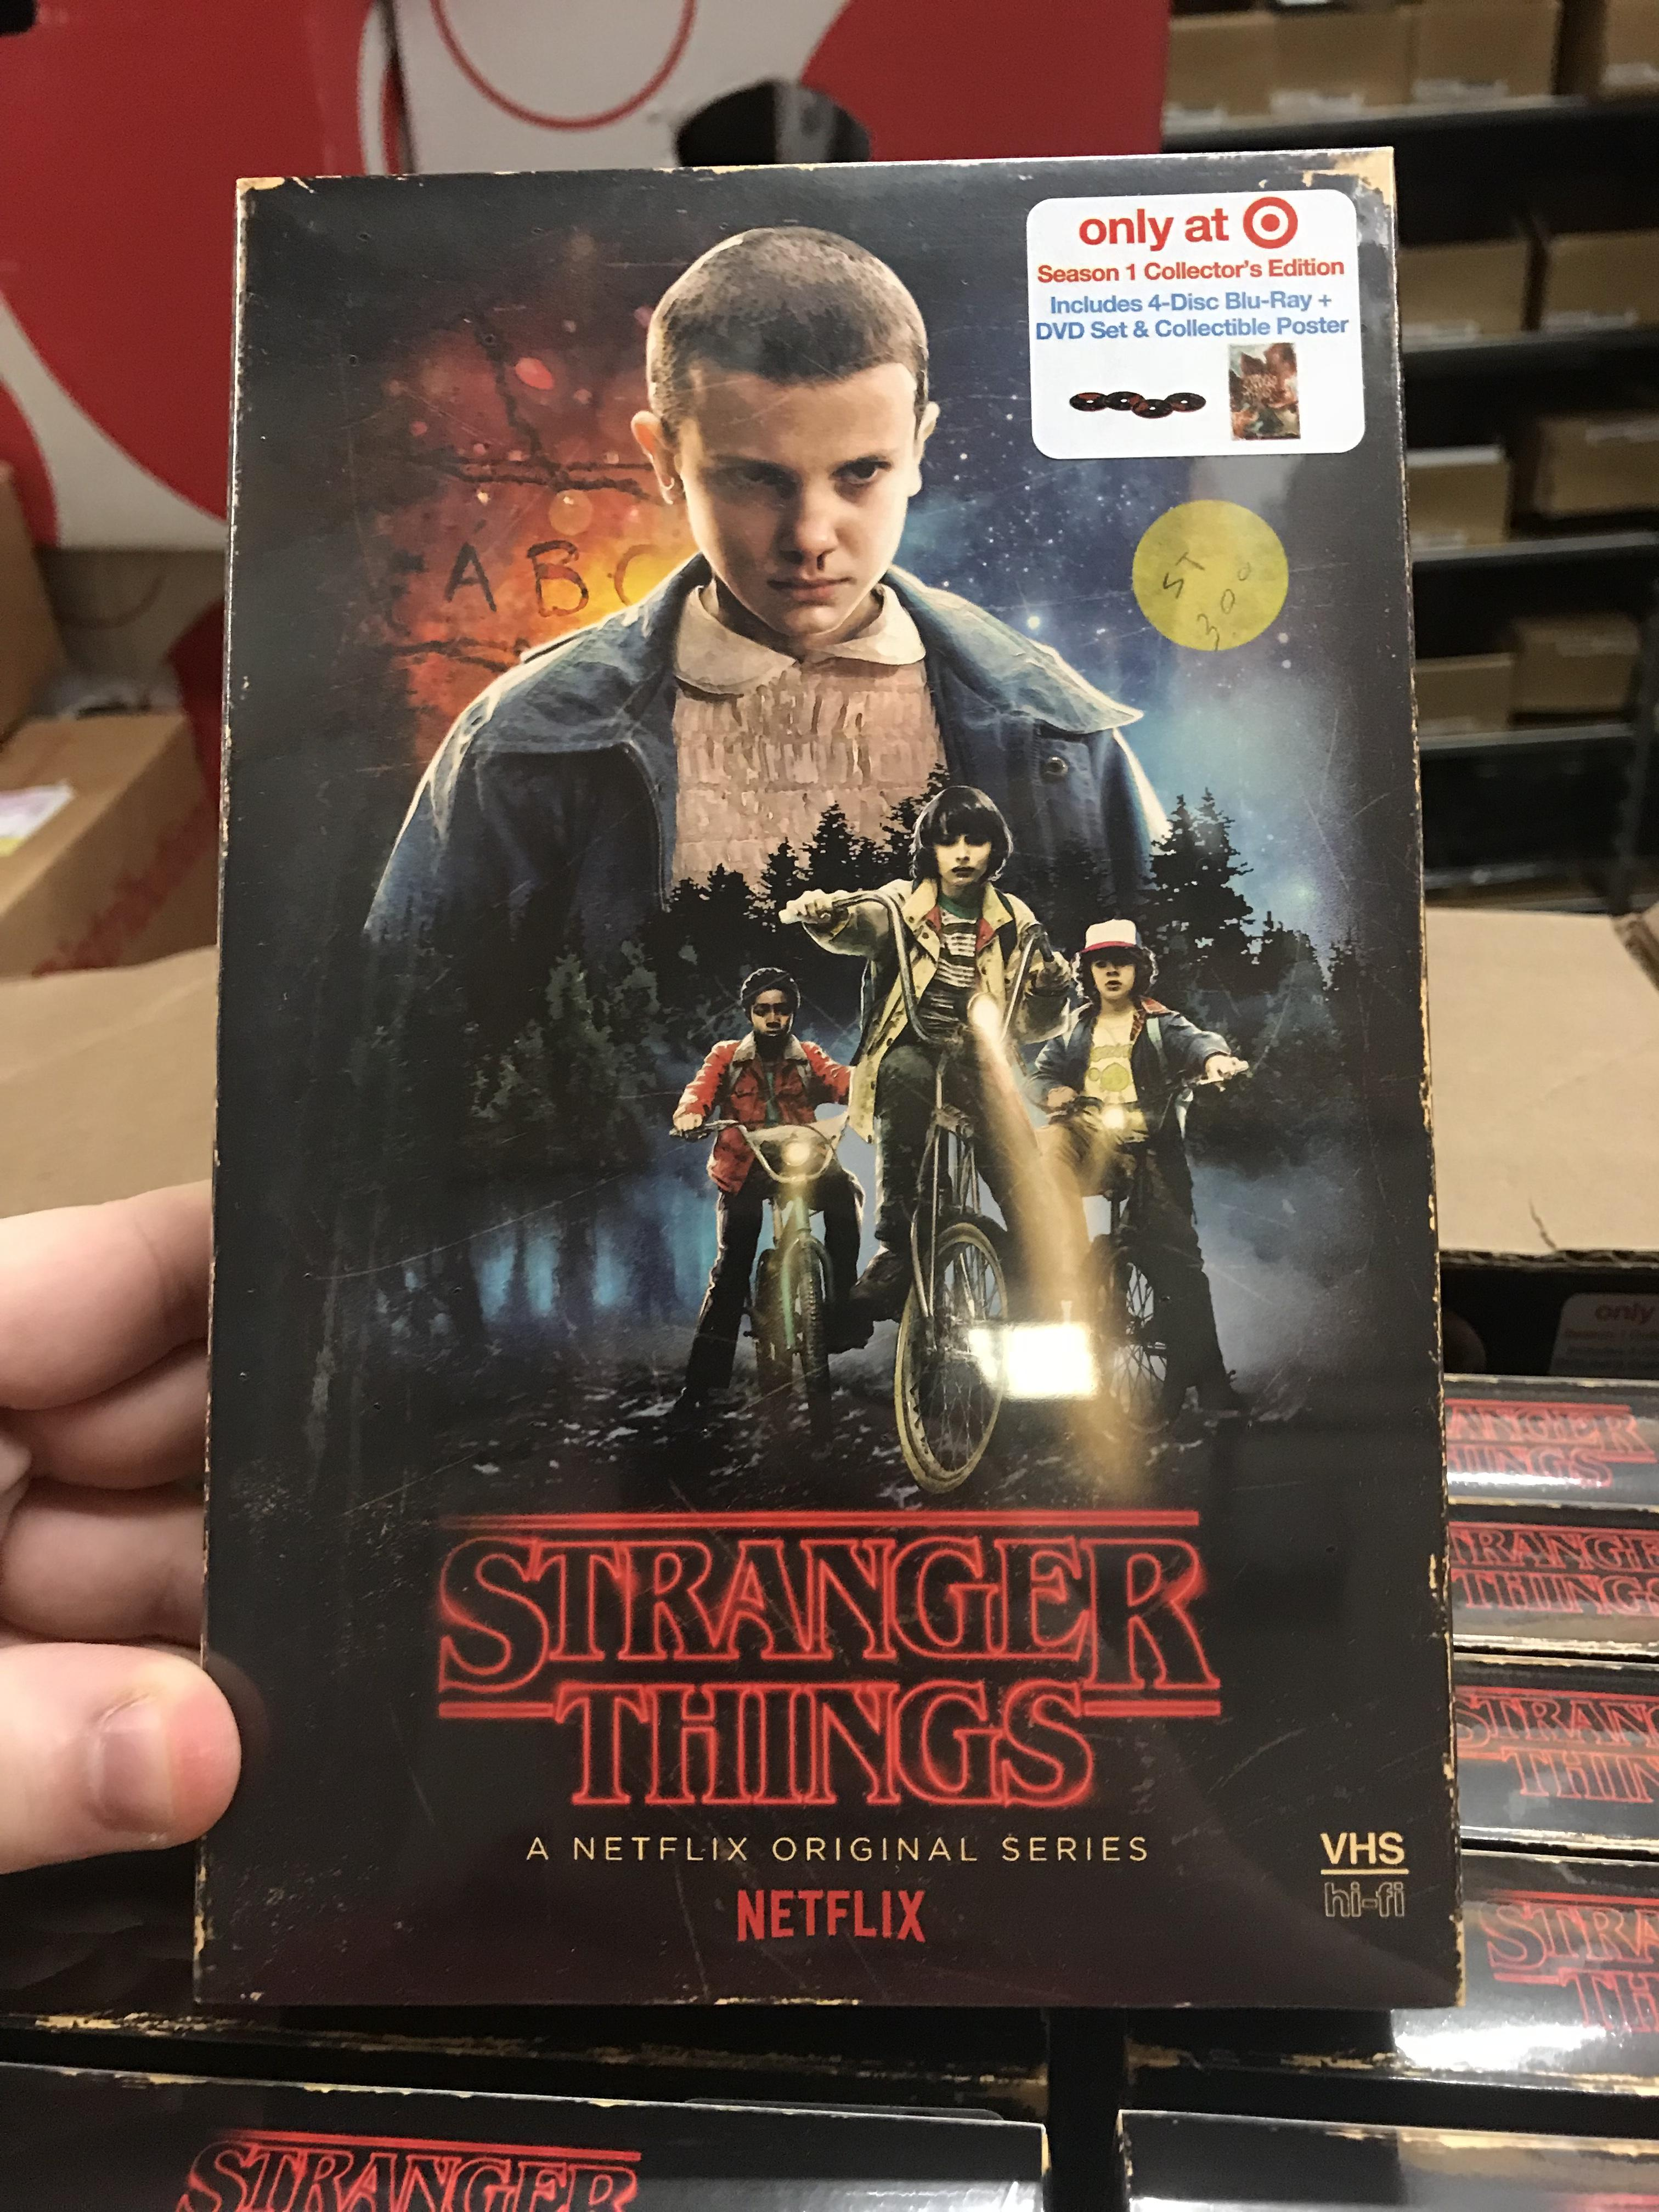 stranger_things1.jpg